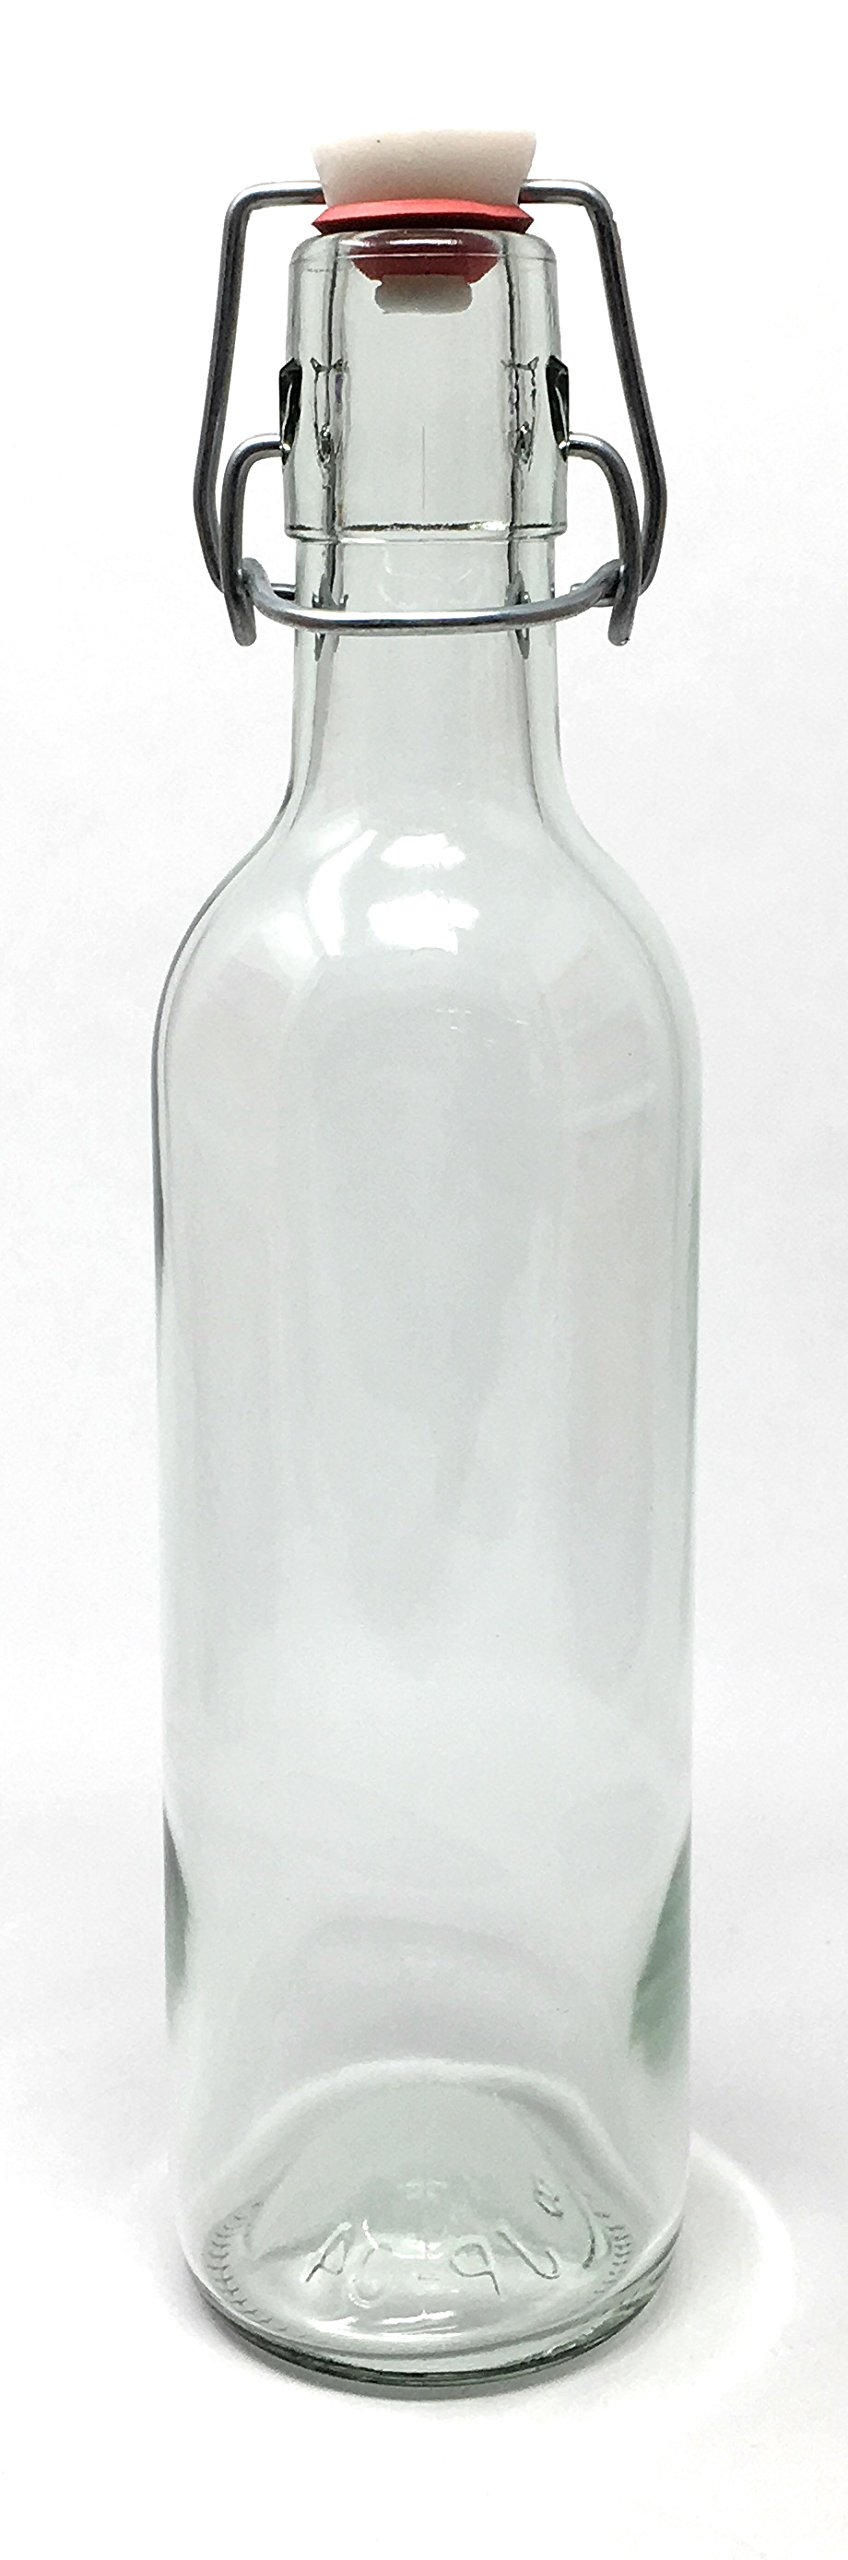 375 ml (12.5 oz) Swing Top Glass Bottle 12 Pack EZ Top JP-04 Metro by Packaging For You